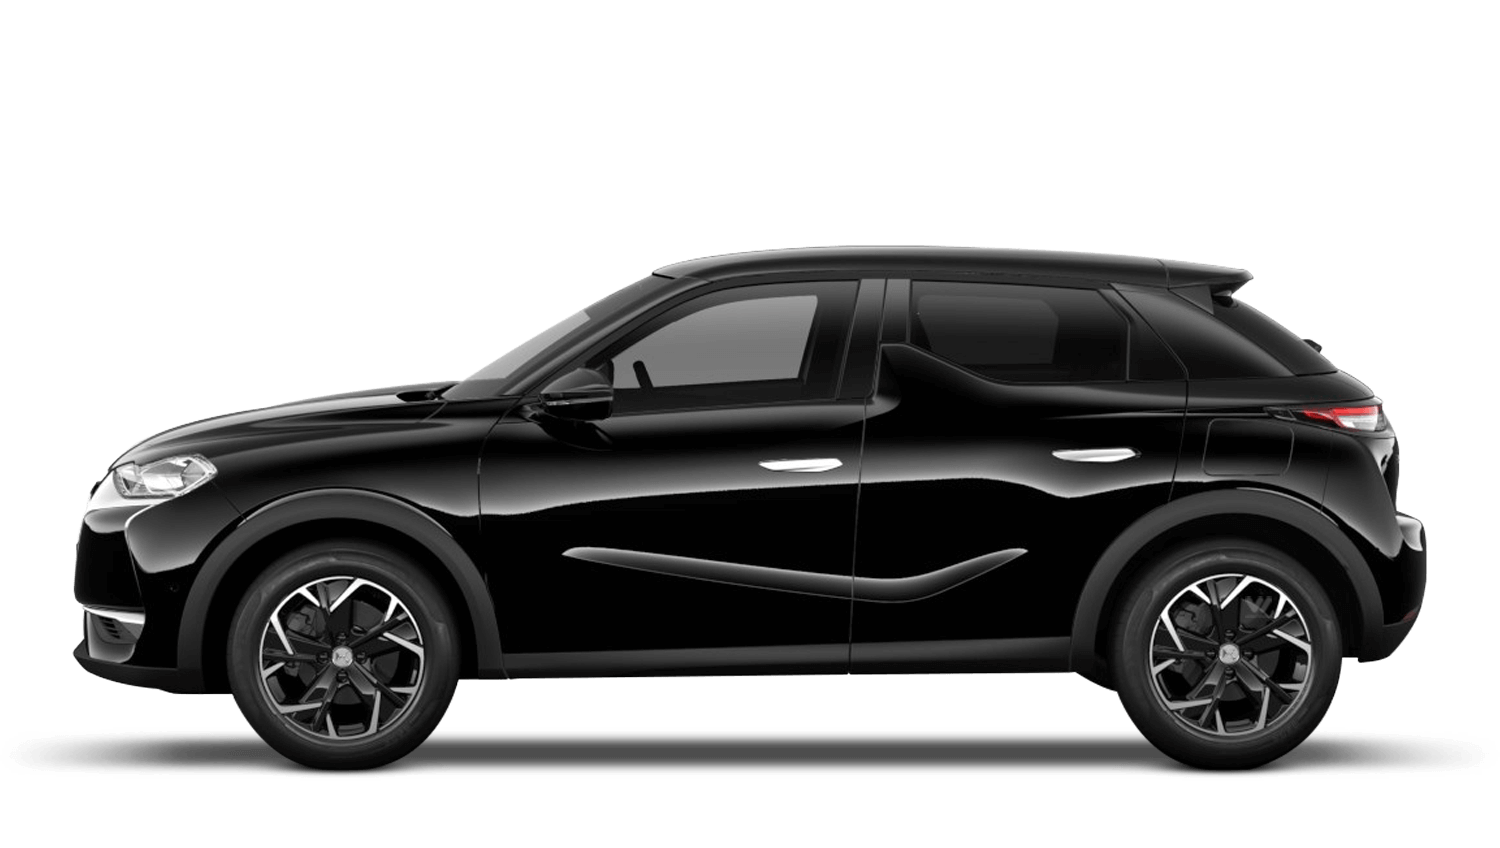 Perla Nera Black (Metallic) DS DS 3 Crossback E Tense